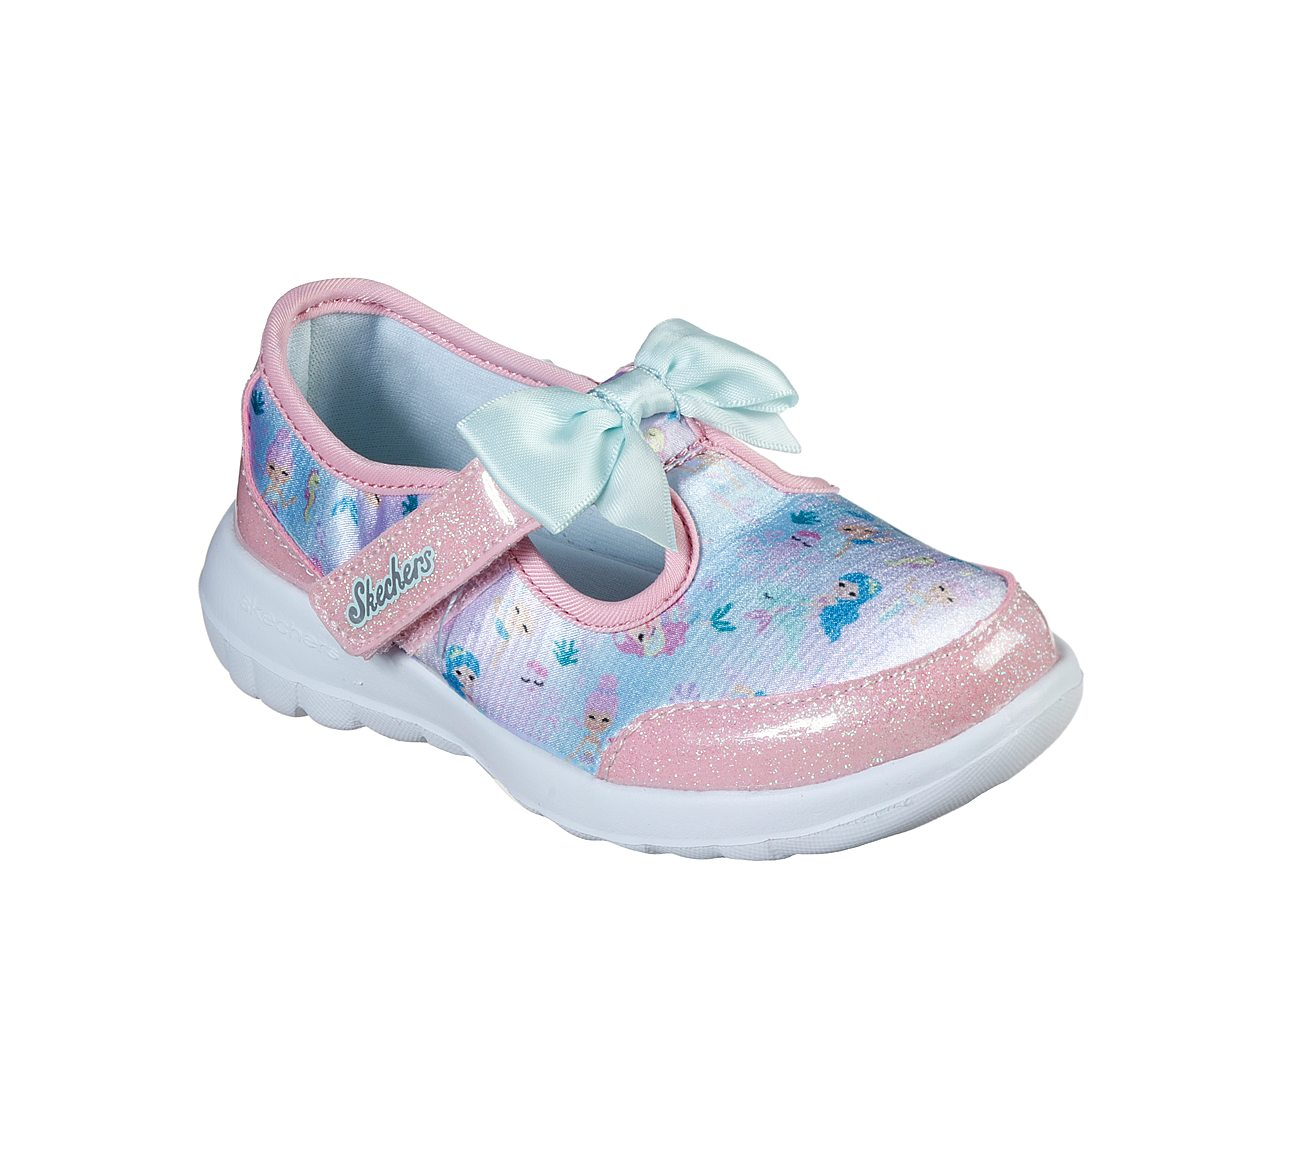 Skechers GOwalk Joy - Sparkle Squad